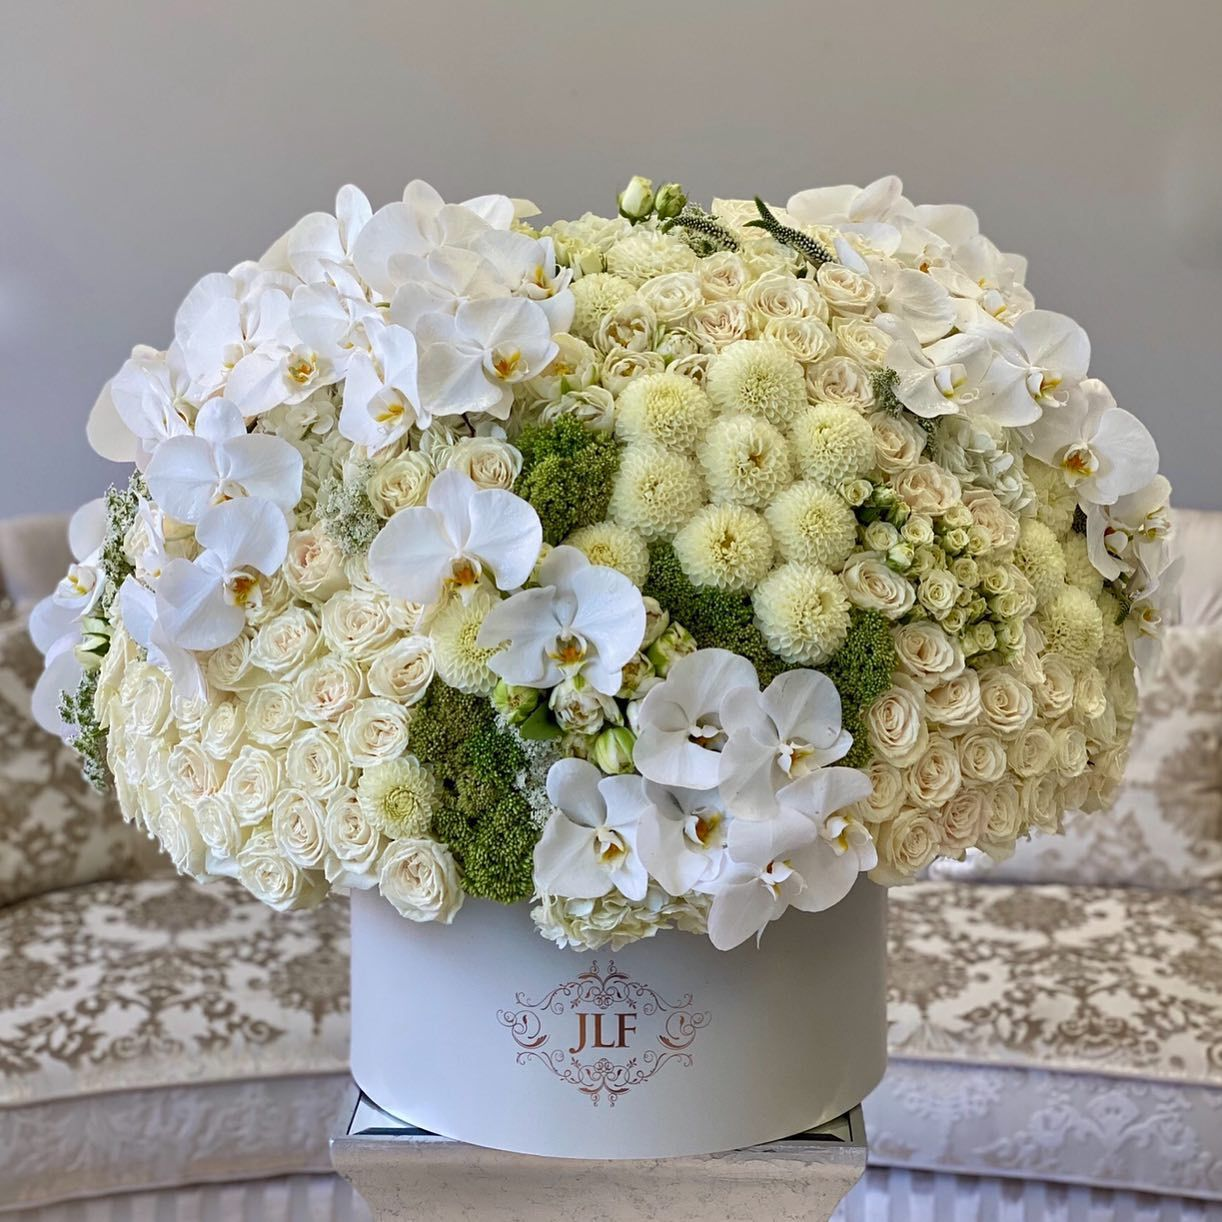 A Luxurious And Extra Grand Arrangement Is Just What She Needs Gorgeous Classic White Roses Are A In 2020 Same Day Flower Delivery Flower Delivery Floral Arrangements